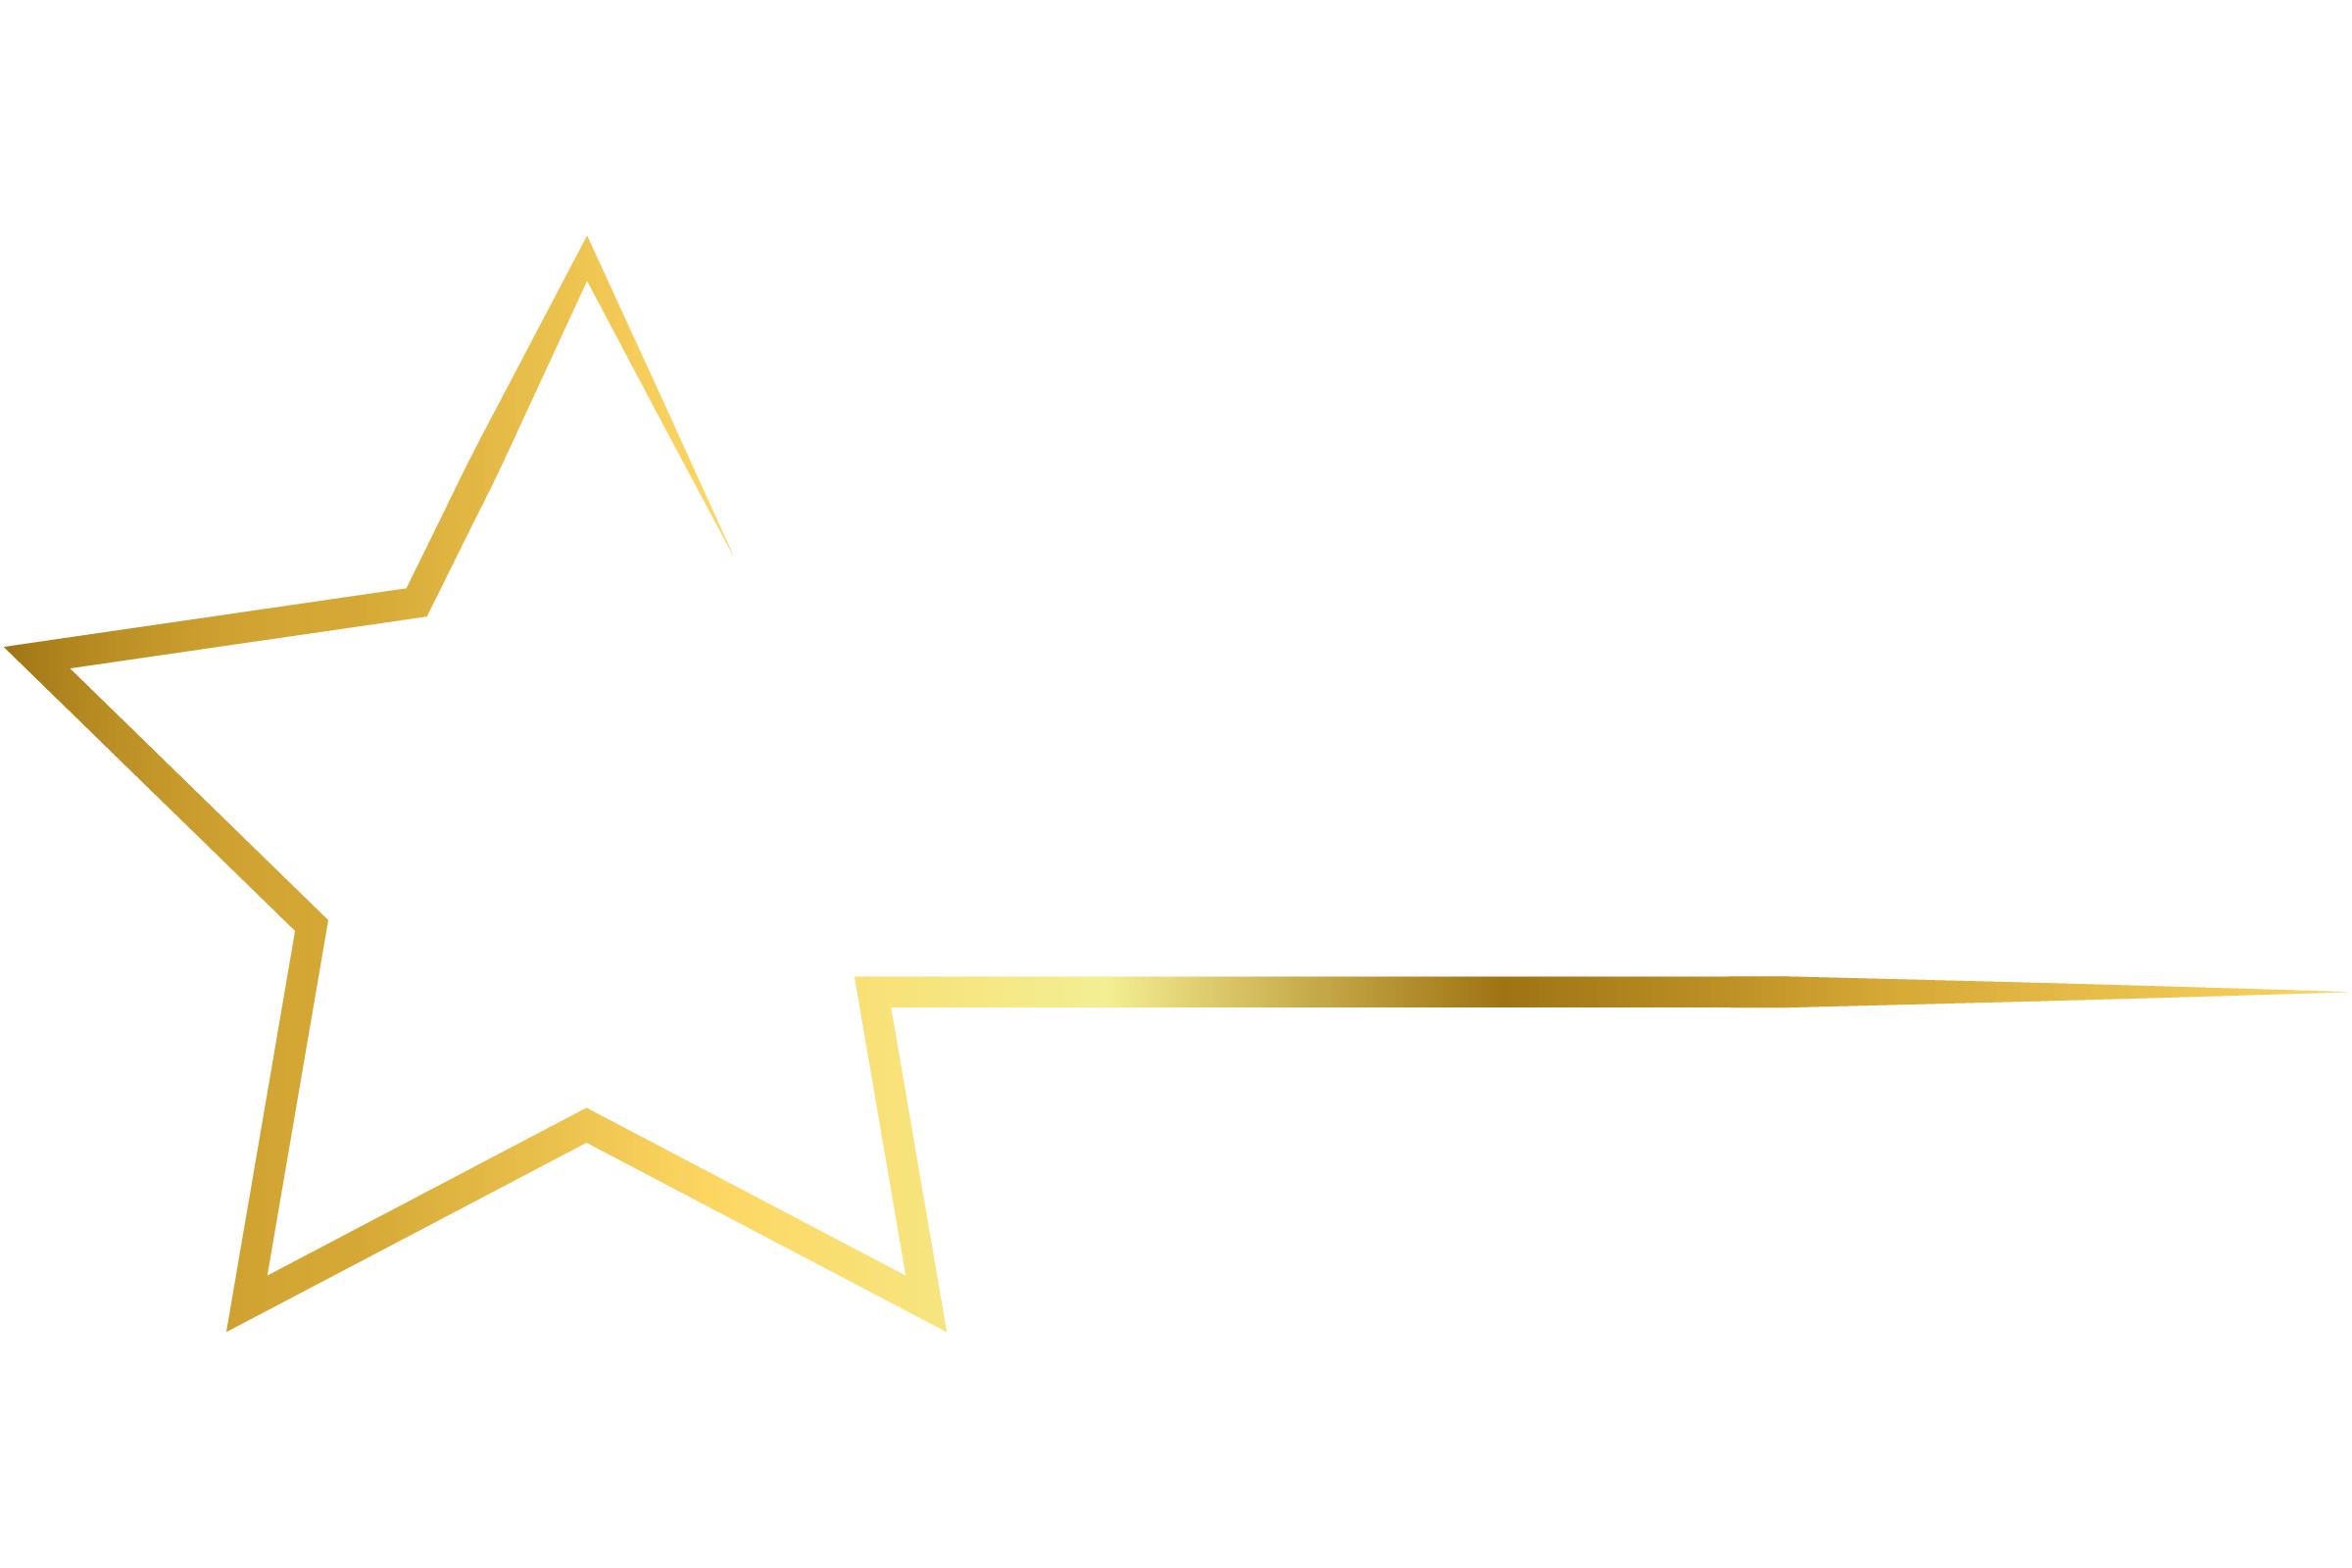 KENNEL GREIS WORKING